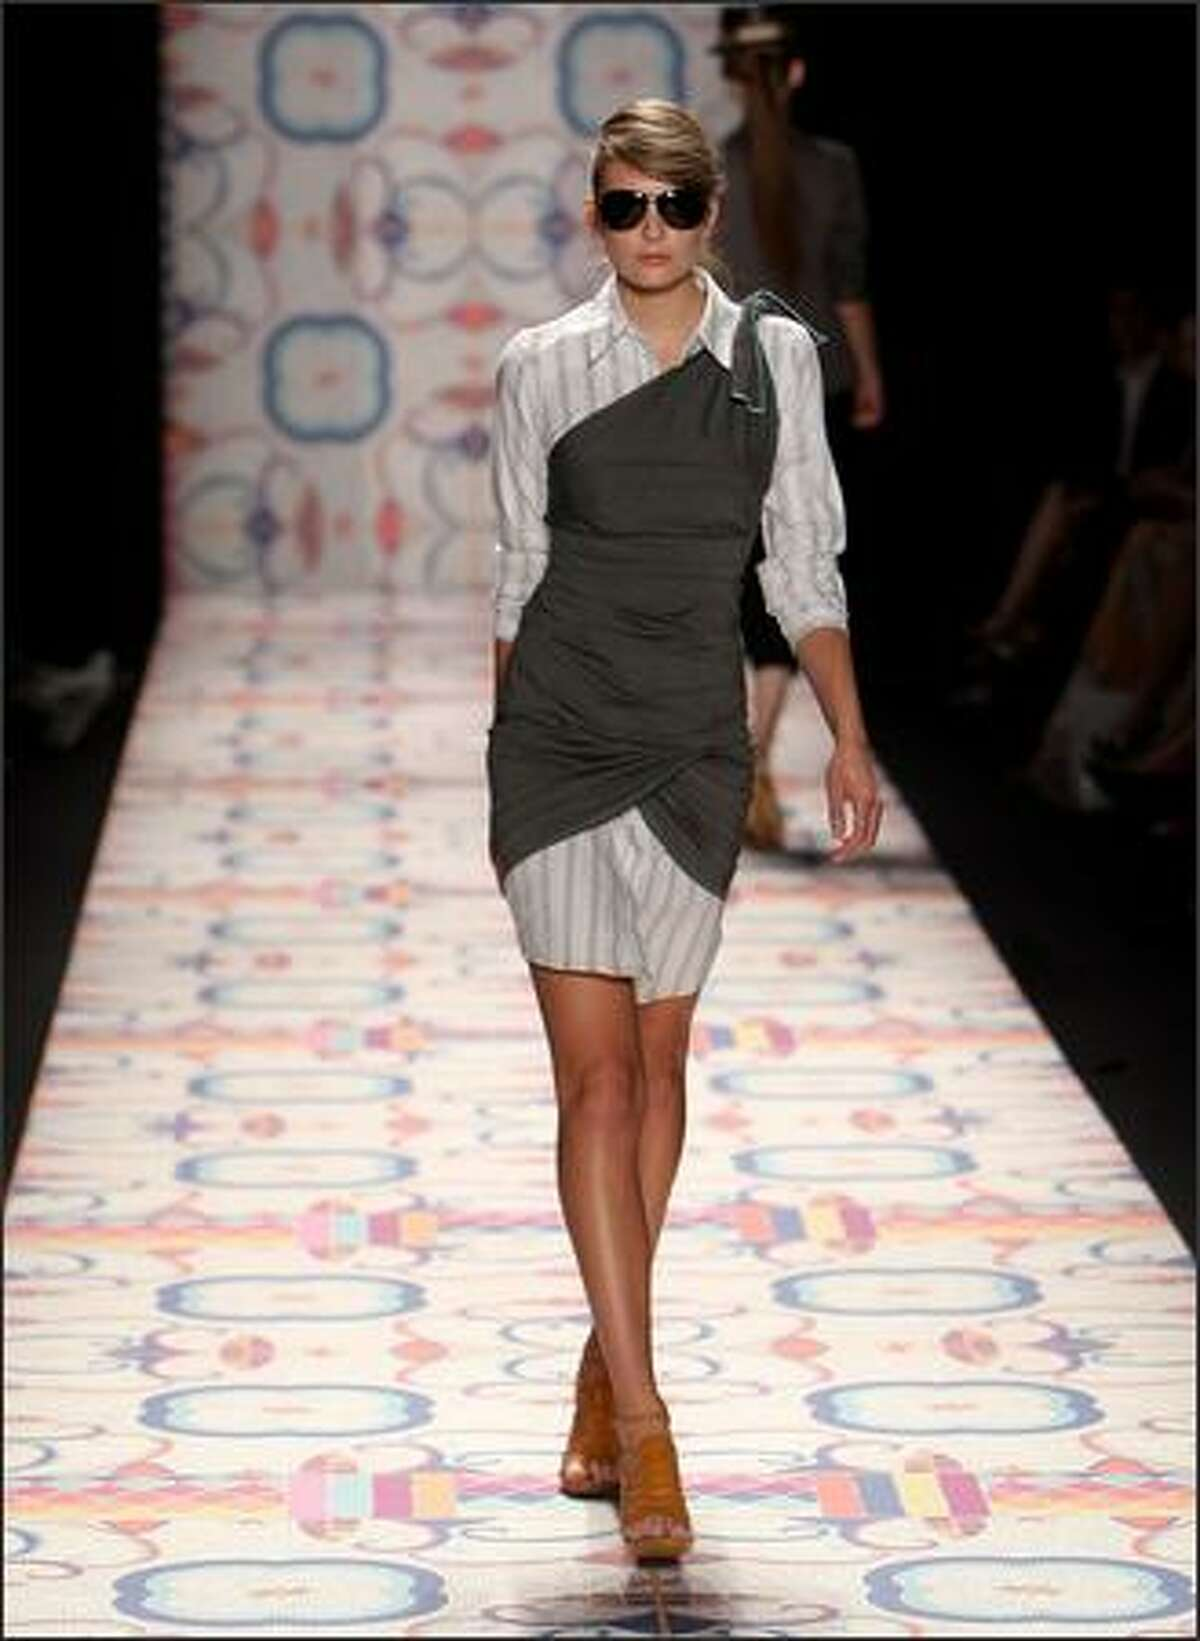 A model walks the runway at the Nicole Miller show.